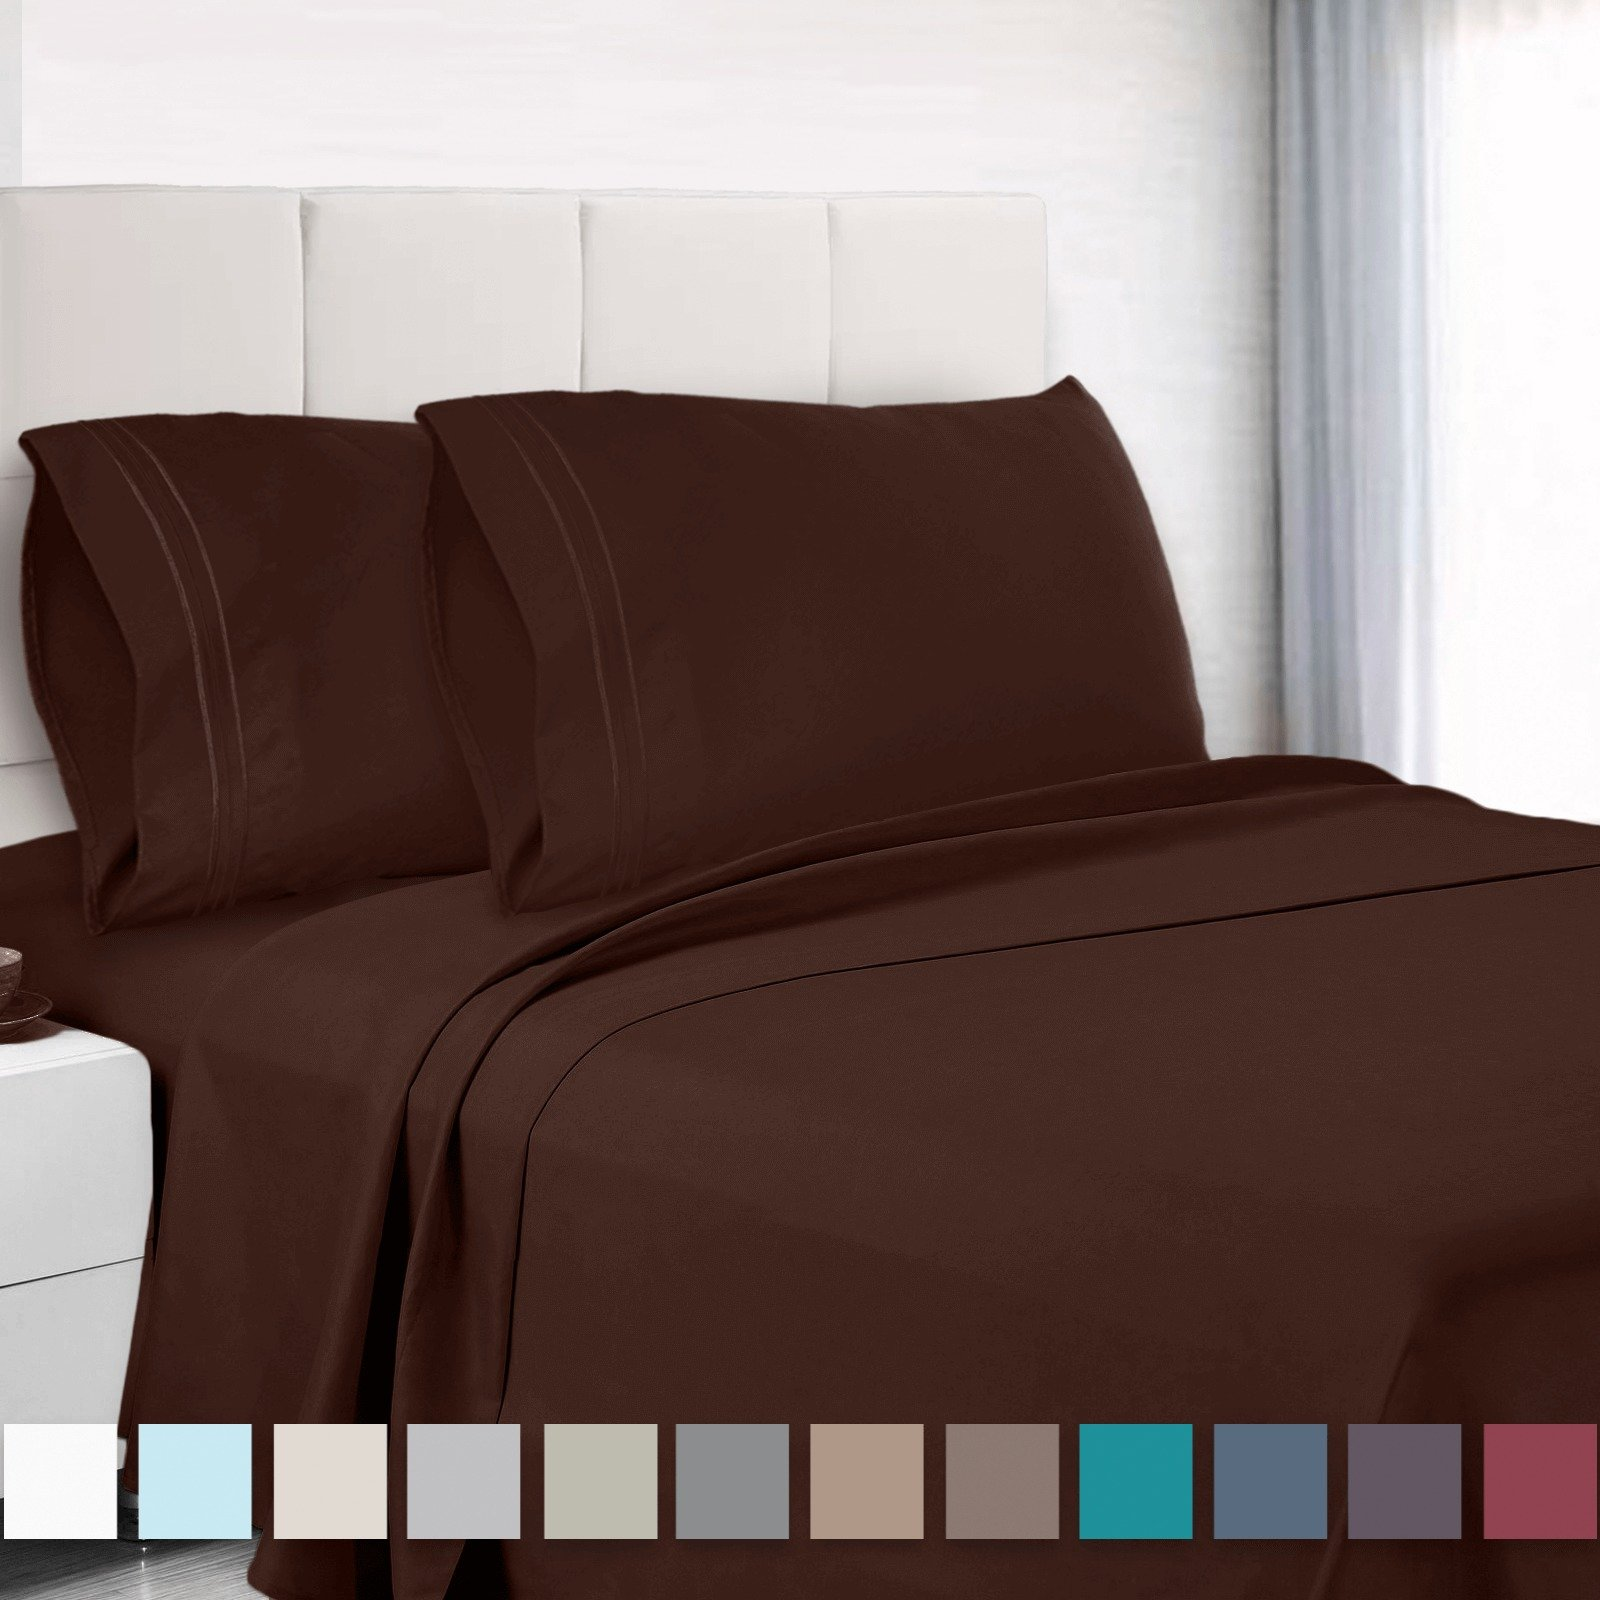 Premium Cal King Sheets Set - Dark Brown Chocolate Hotel Luxury 4-Piece Bed Set, Deep Pocket Special Super Fit Fitted Sheet, Best Quality Microfiber Linen Soft & Durable Design + Better Sleep Guide